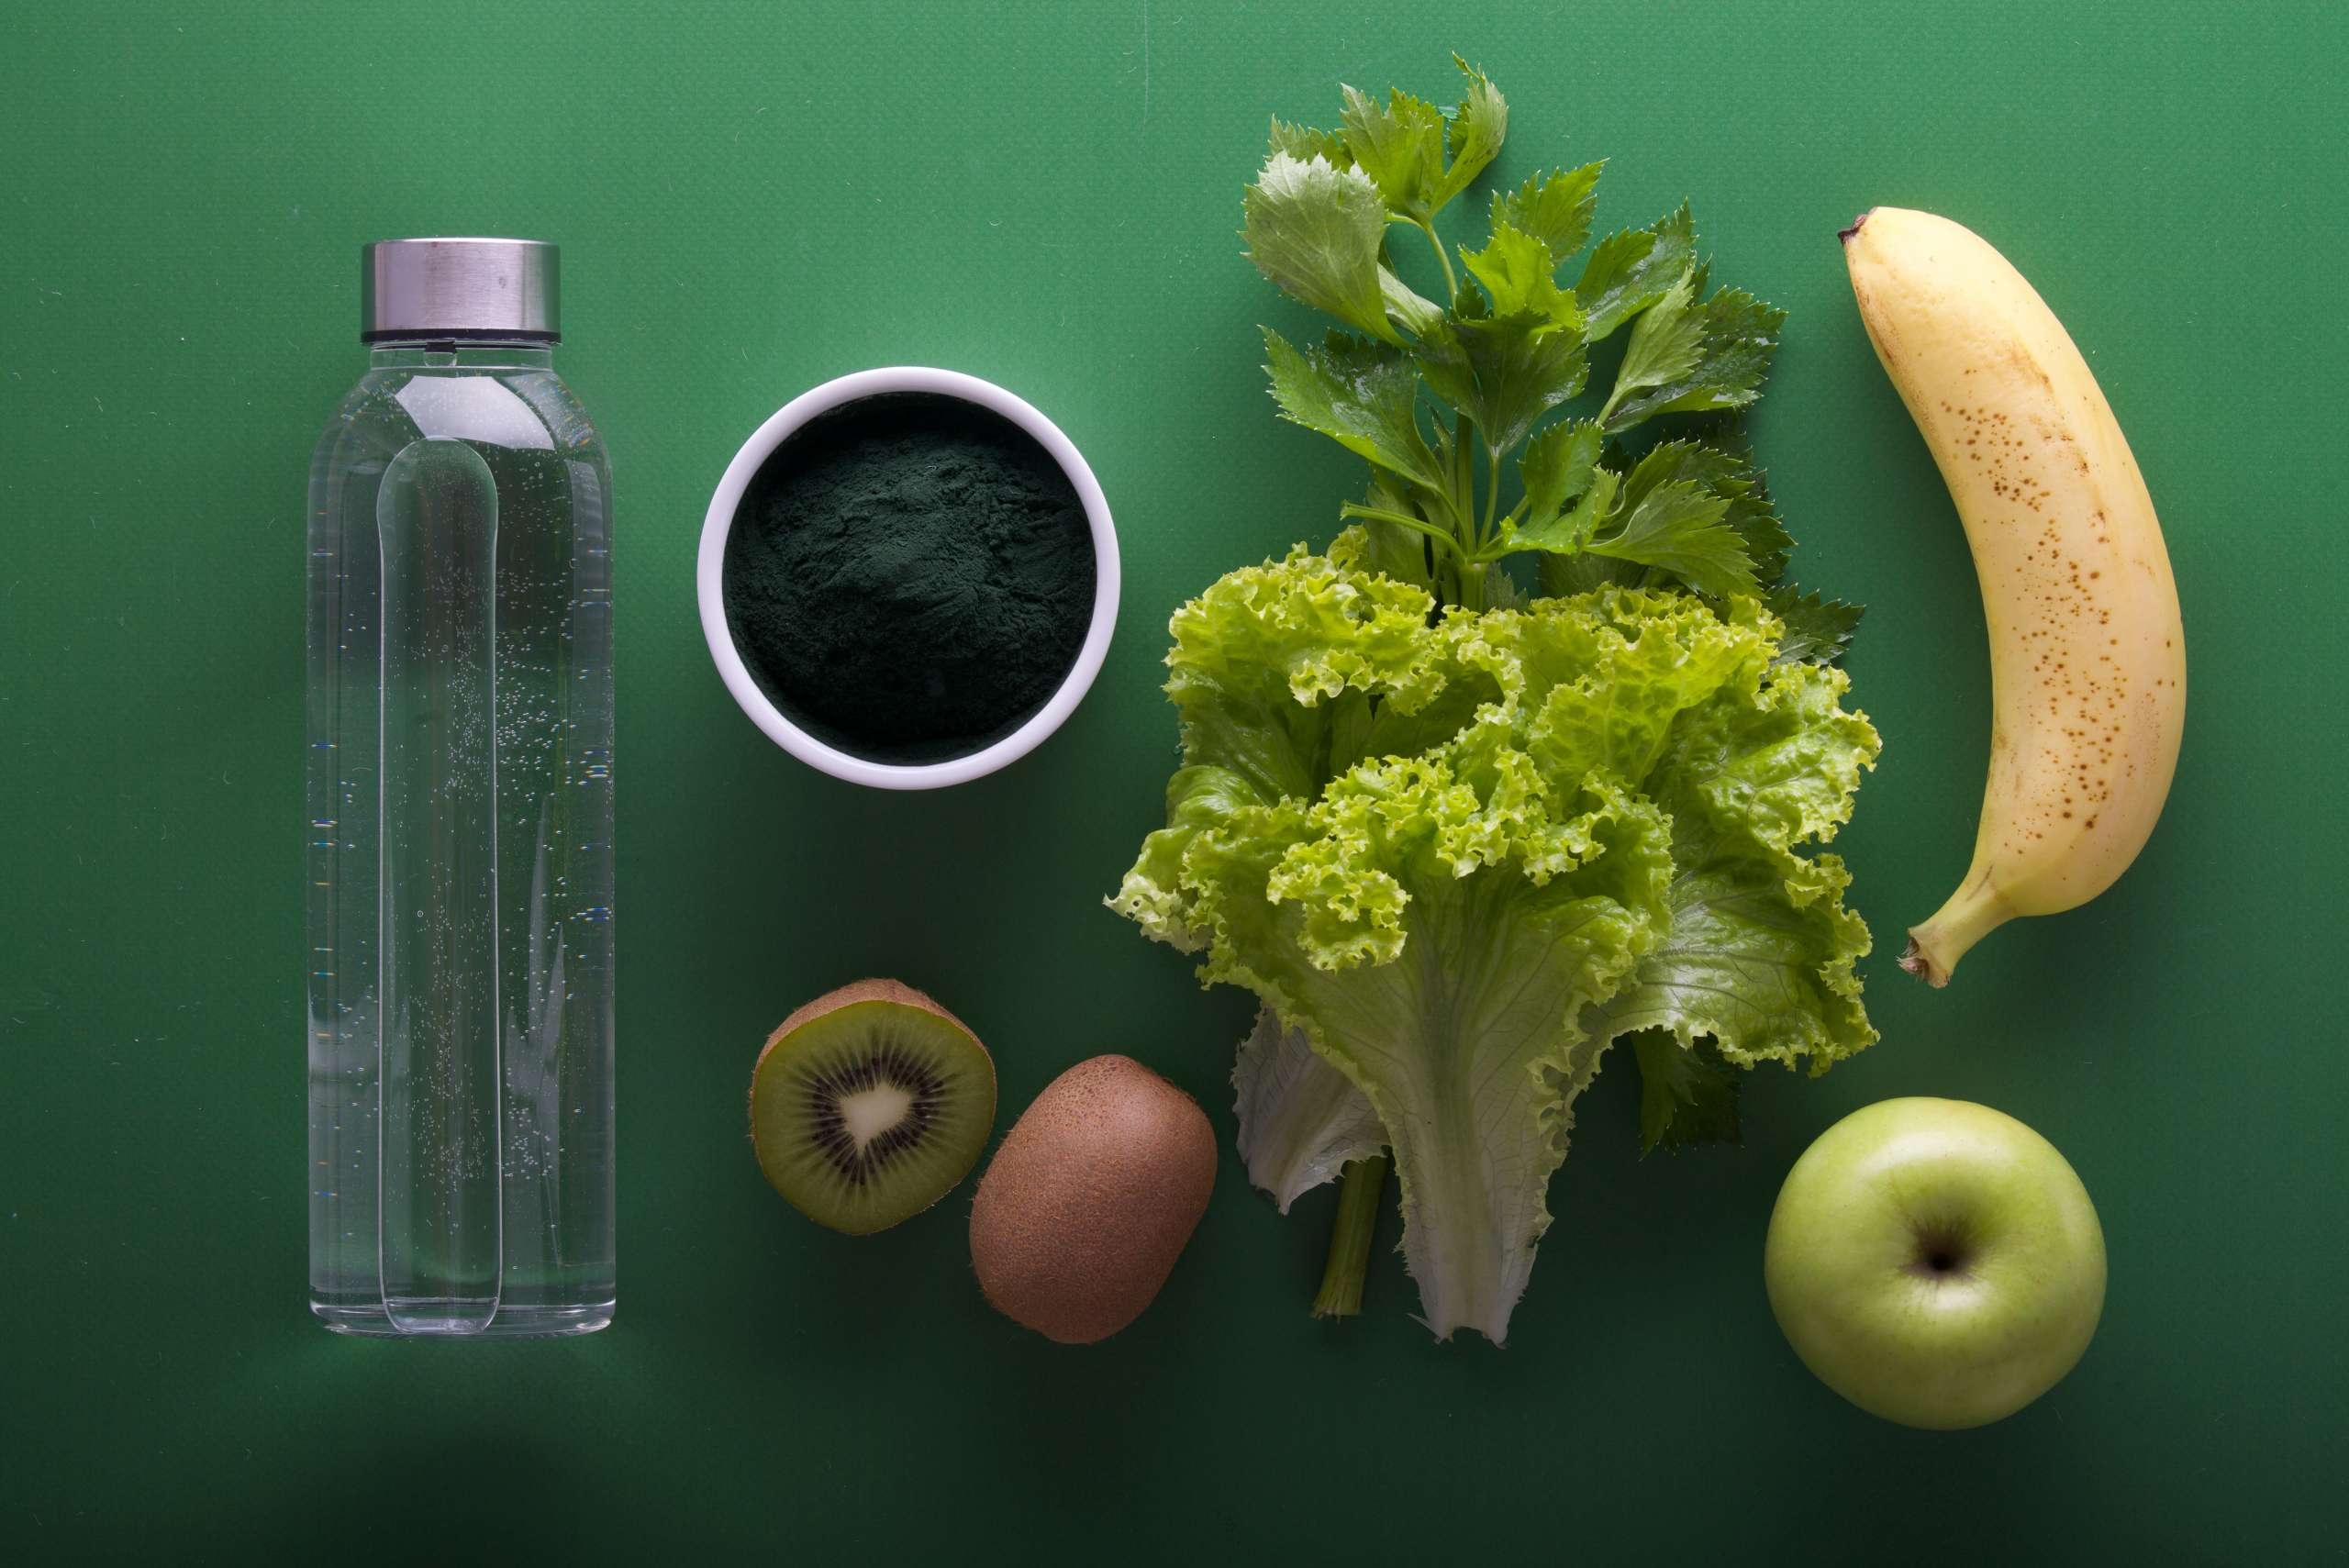 A combination of multiple healthy food items.